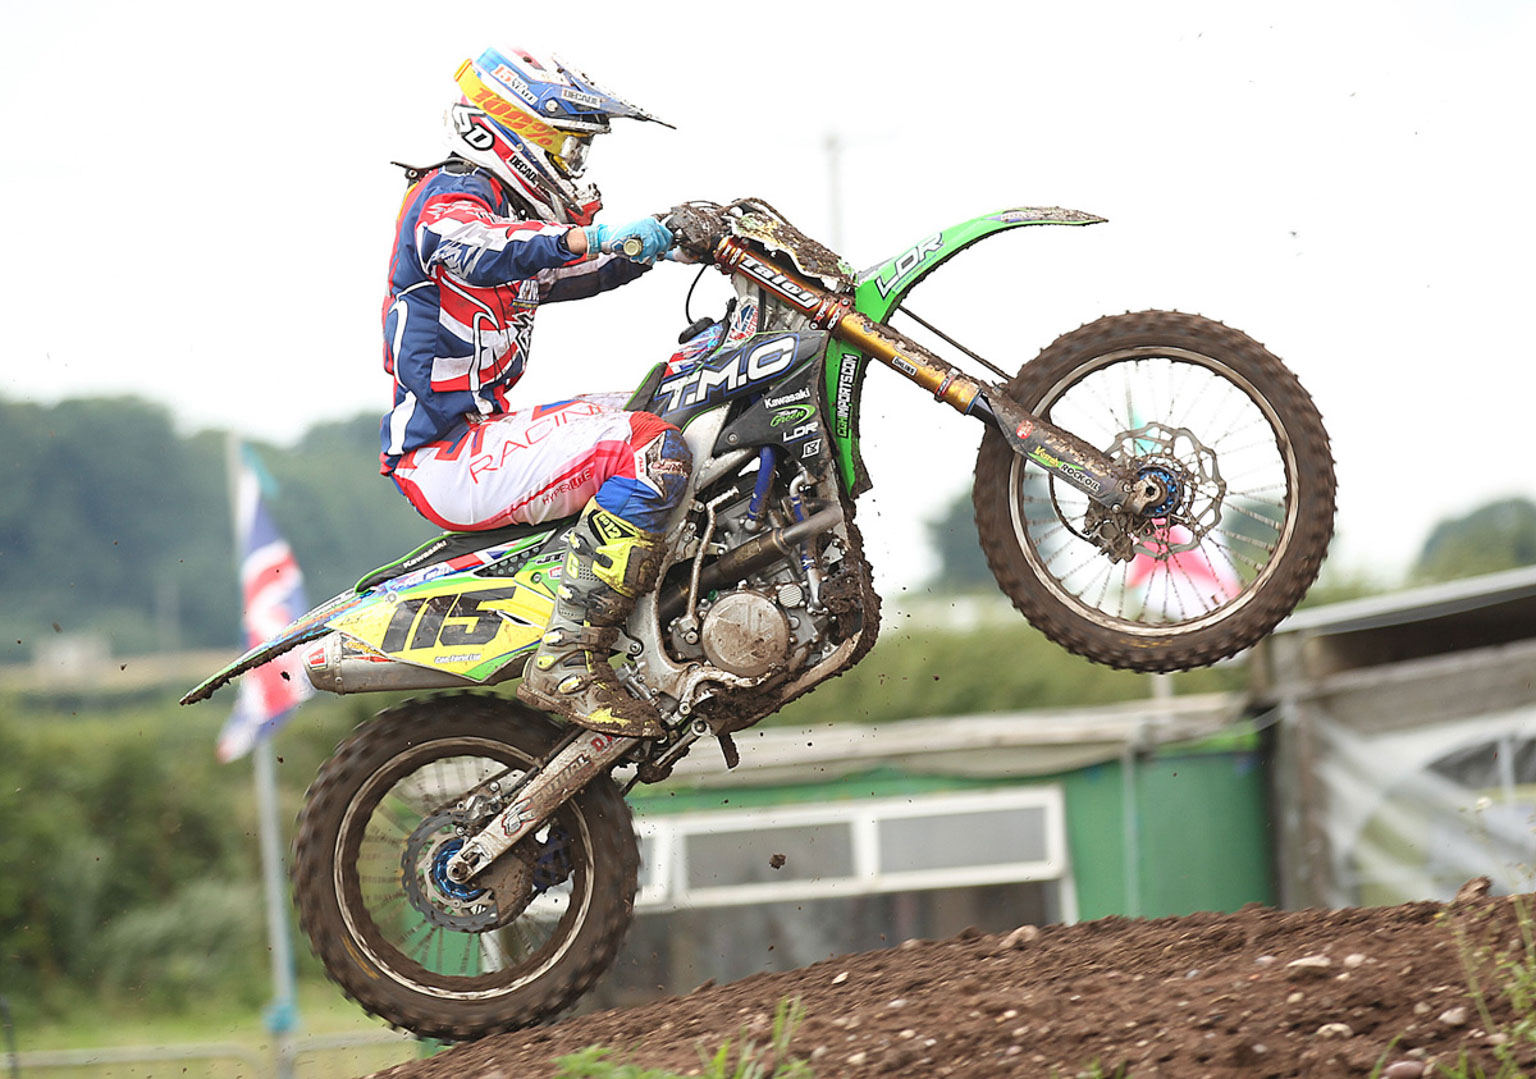 Paul Neale, 7th in MX1